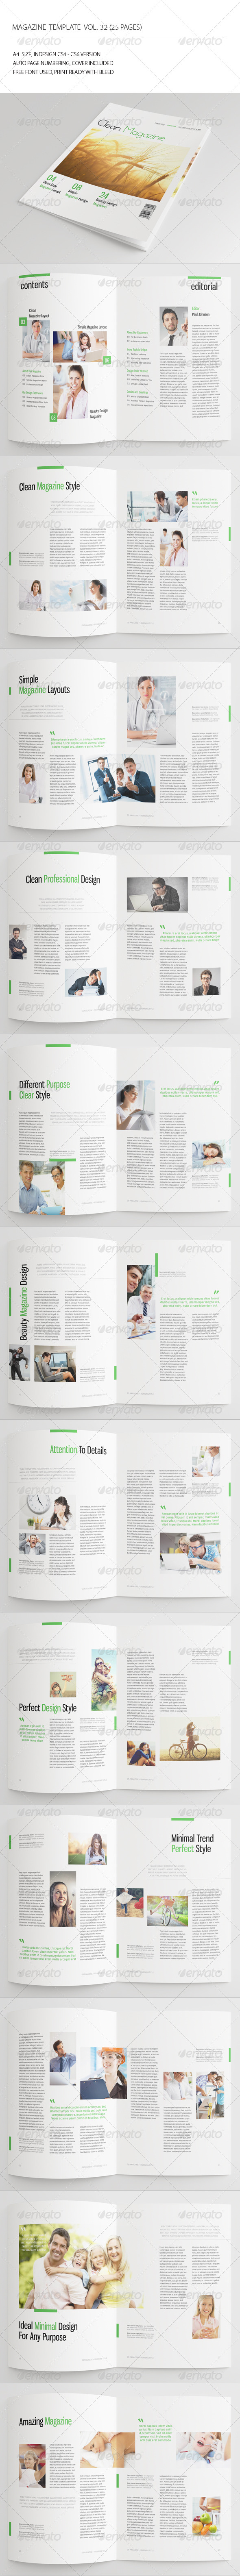 GraphicRiver 25 Pages Minimal Magazine Vol32 7234539